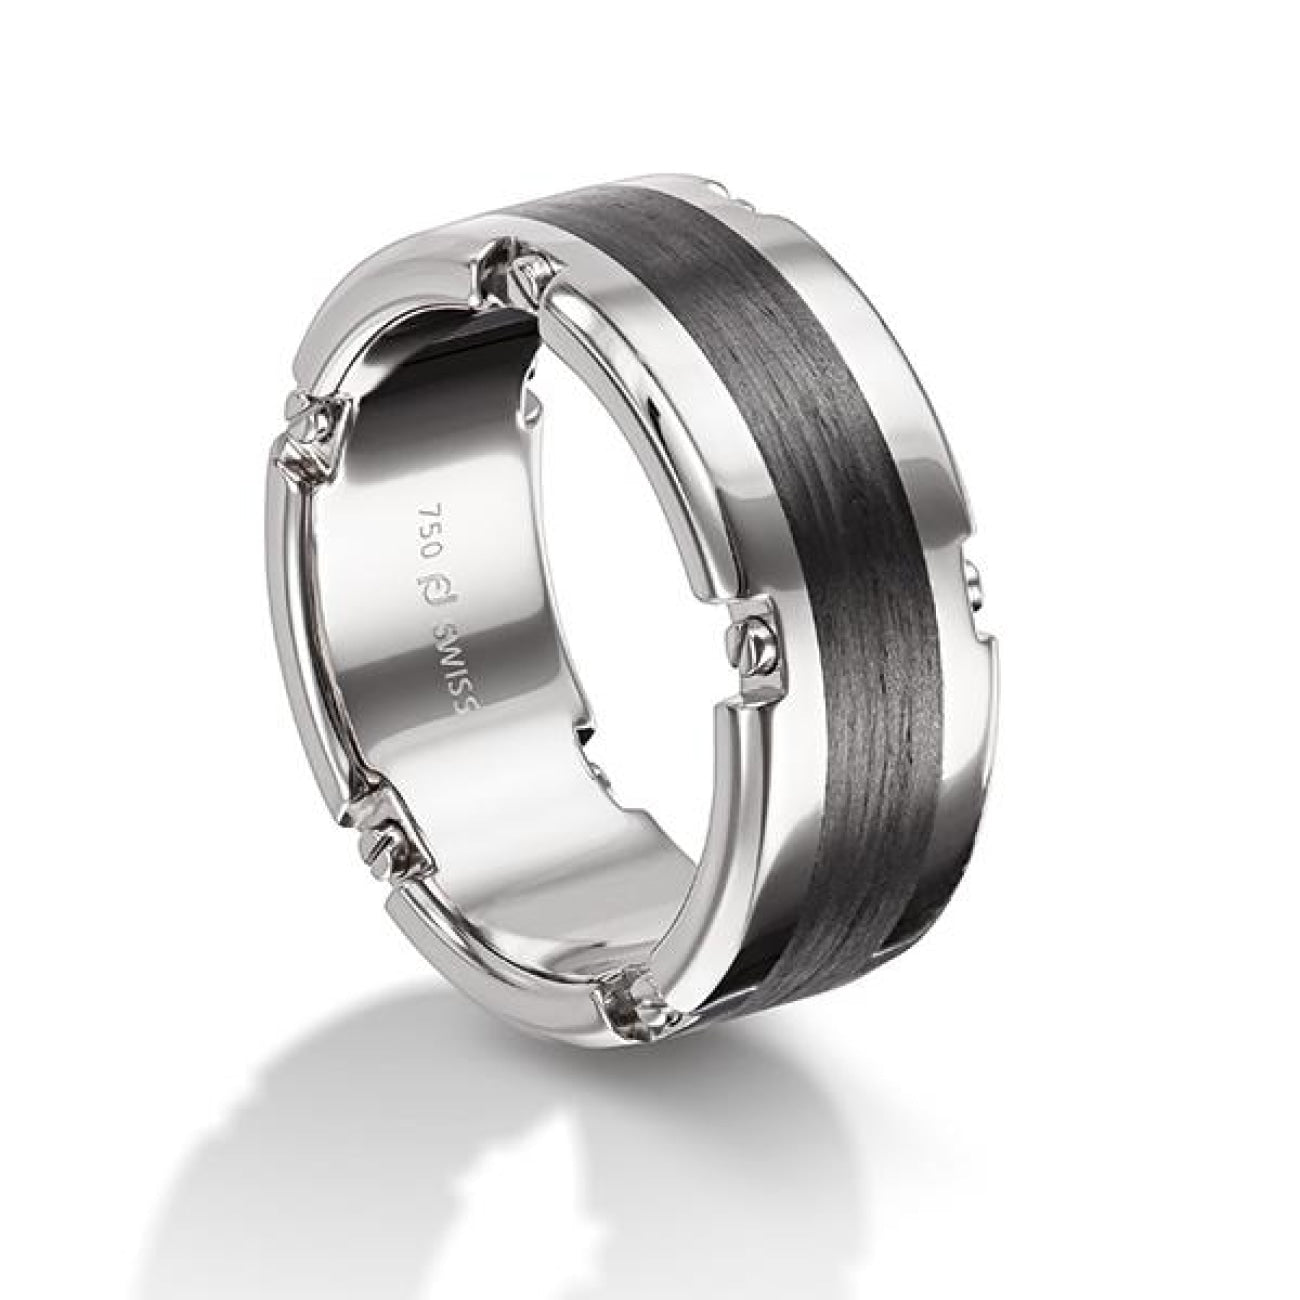 Furrer Jacot Engagement - 71-29160-0-0 | Manfredi Jewels